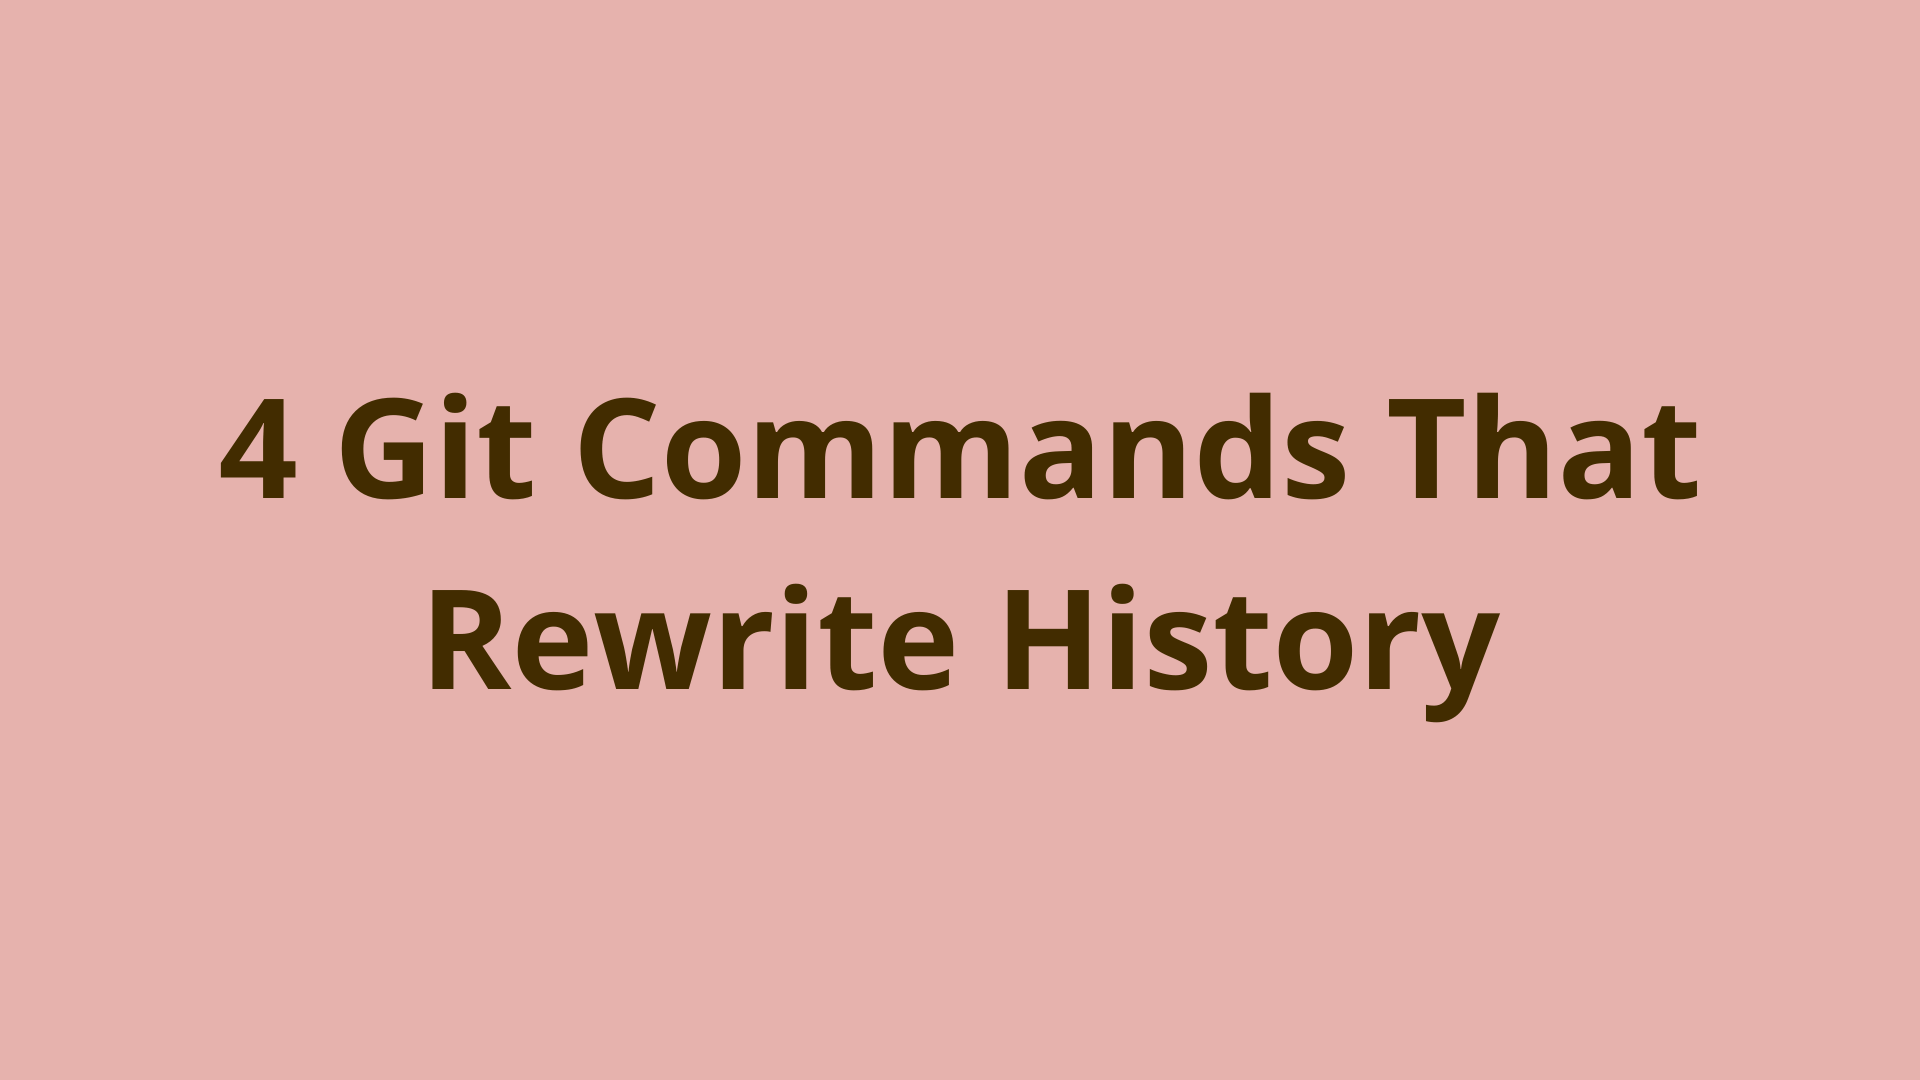 Image of 4 Git Commands that Rewrite Commit History